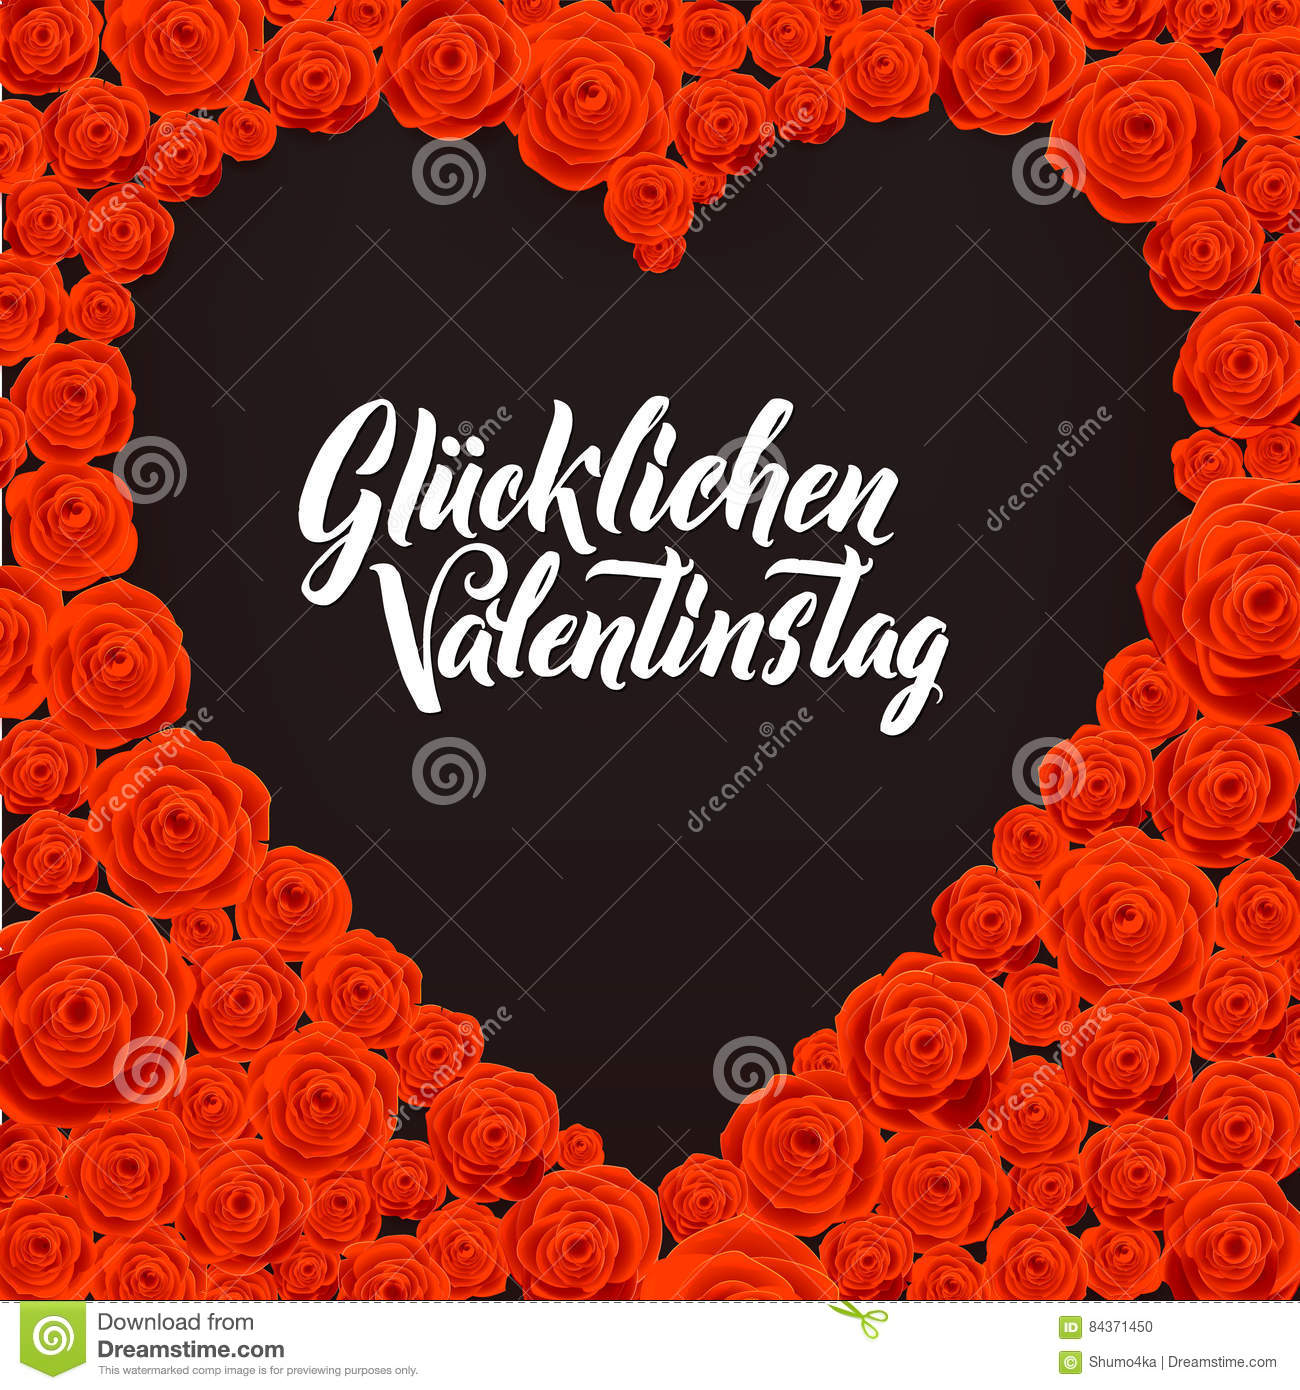 German Mothers Day Card Photos Images Pictures 177 Images – German Valentines Day Cards